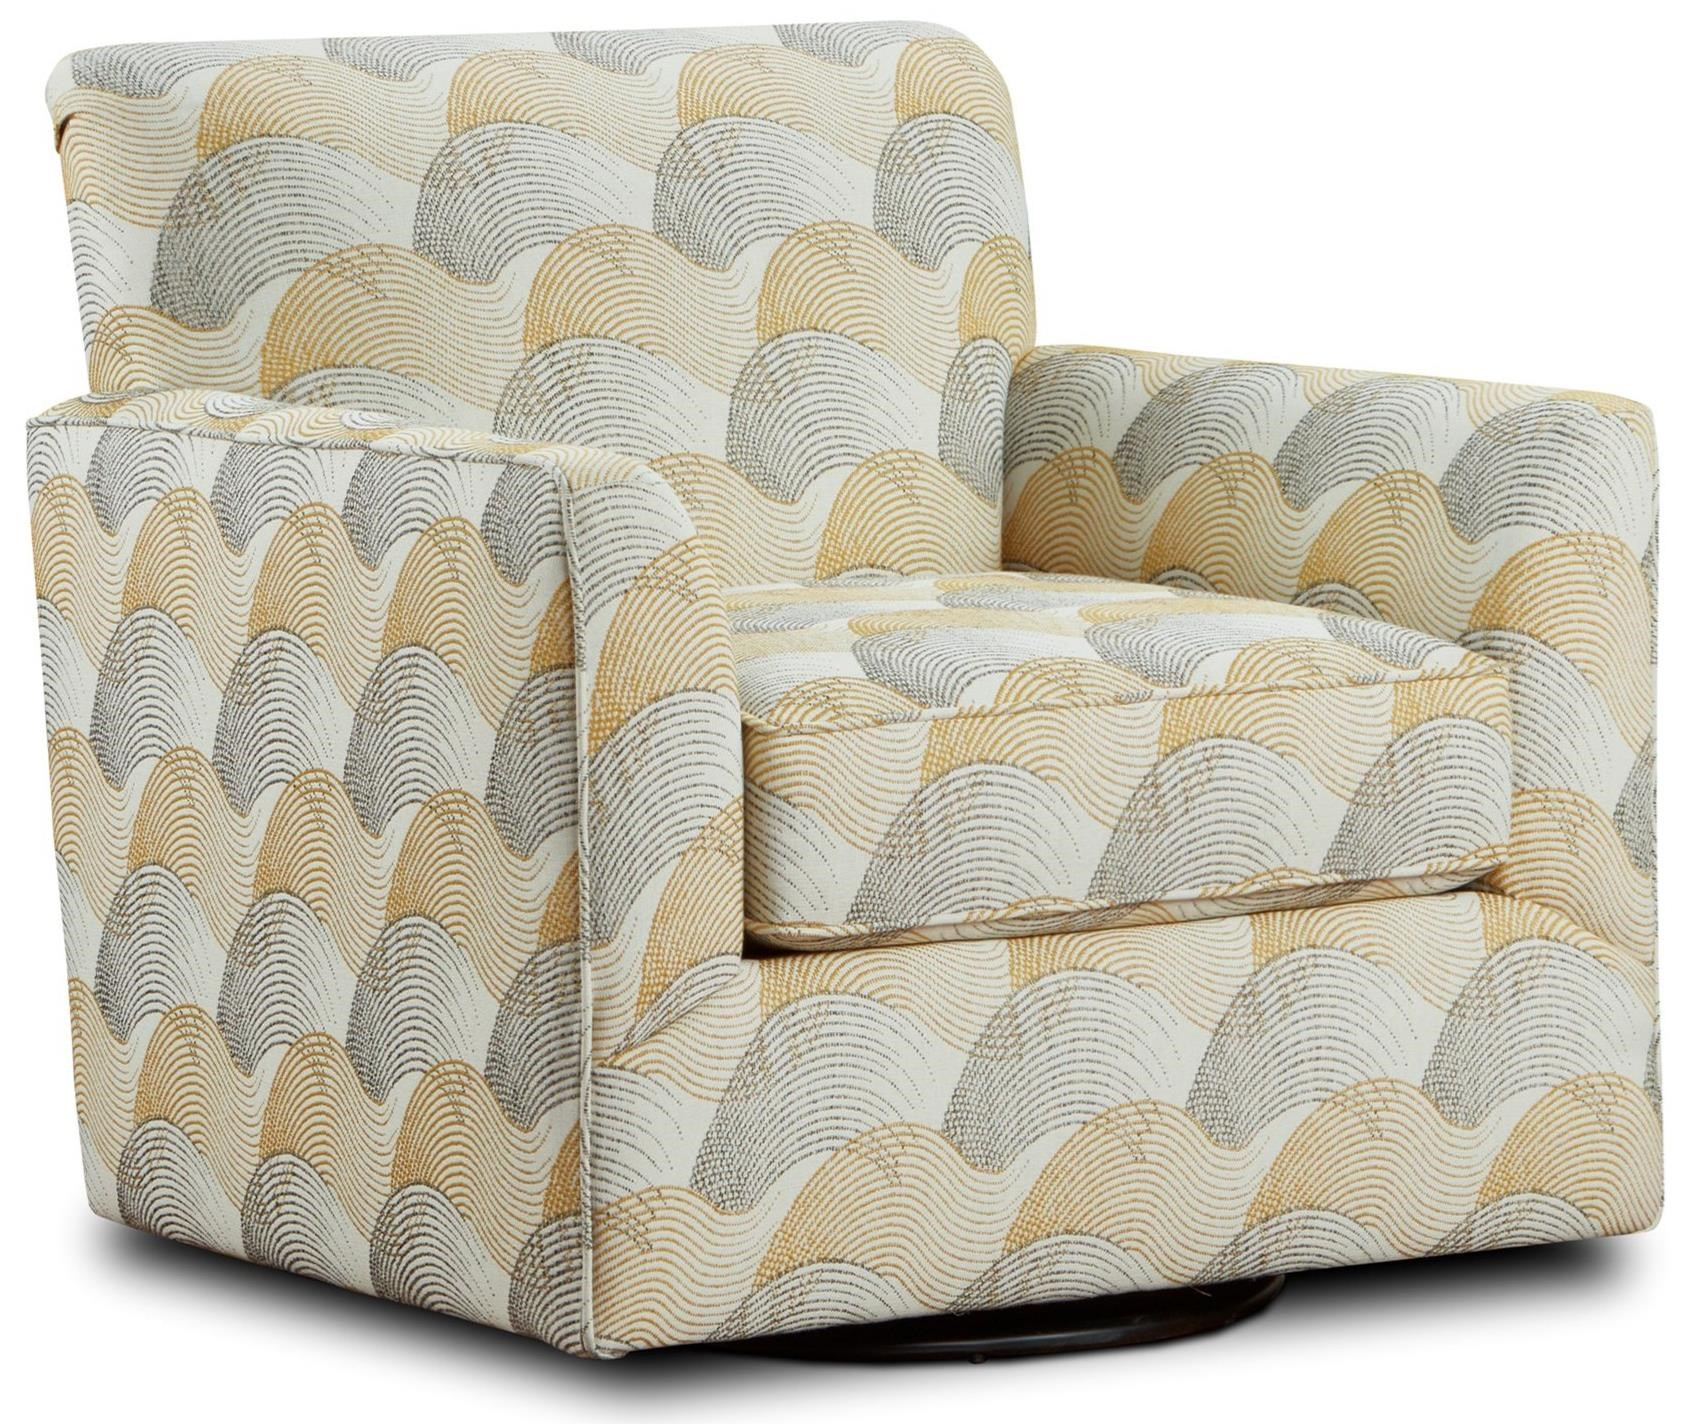 Fusion Furniture Ochre Swivel Chair Crowley Furniture Mattress